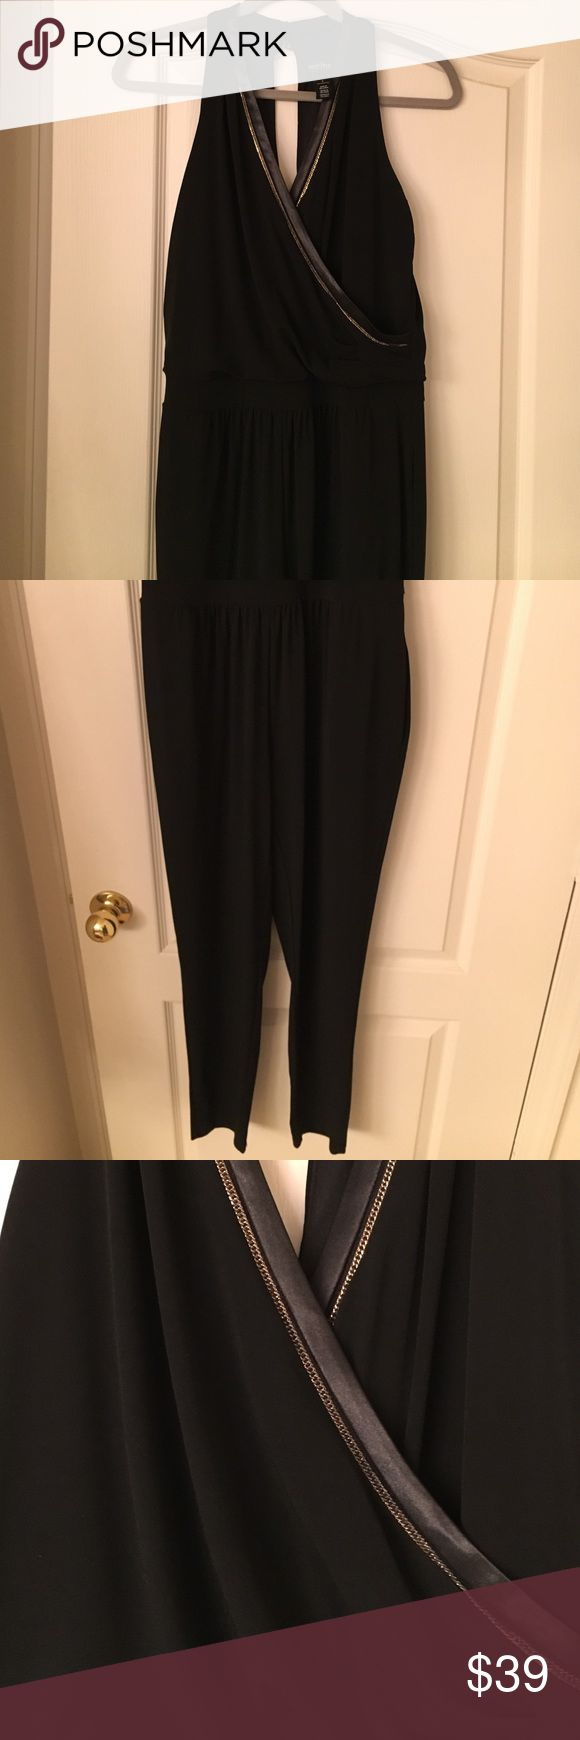 """Black halter jumpsuit WHBM halter jumpsuit.  Pockets, v neck with gold trim.  Size 2.  Legs taper at bottom.  I'm 5'4"""" and length is perfect to wear with heels or dressy flip flops.  Never worn. White House Black Market Other"""